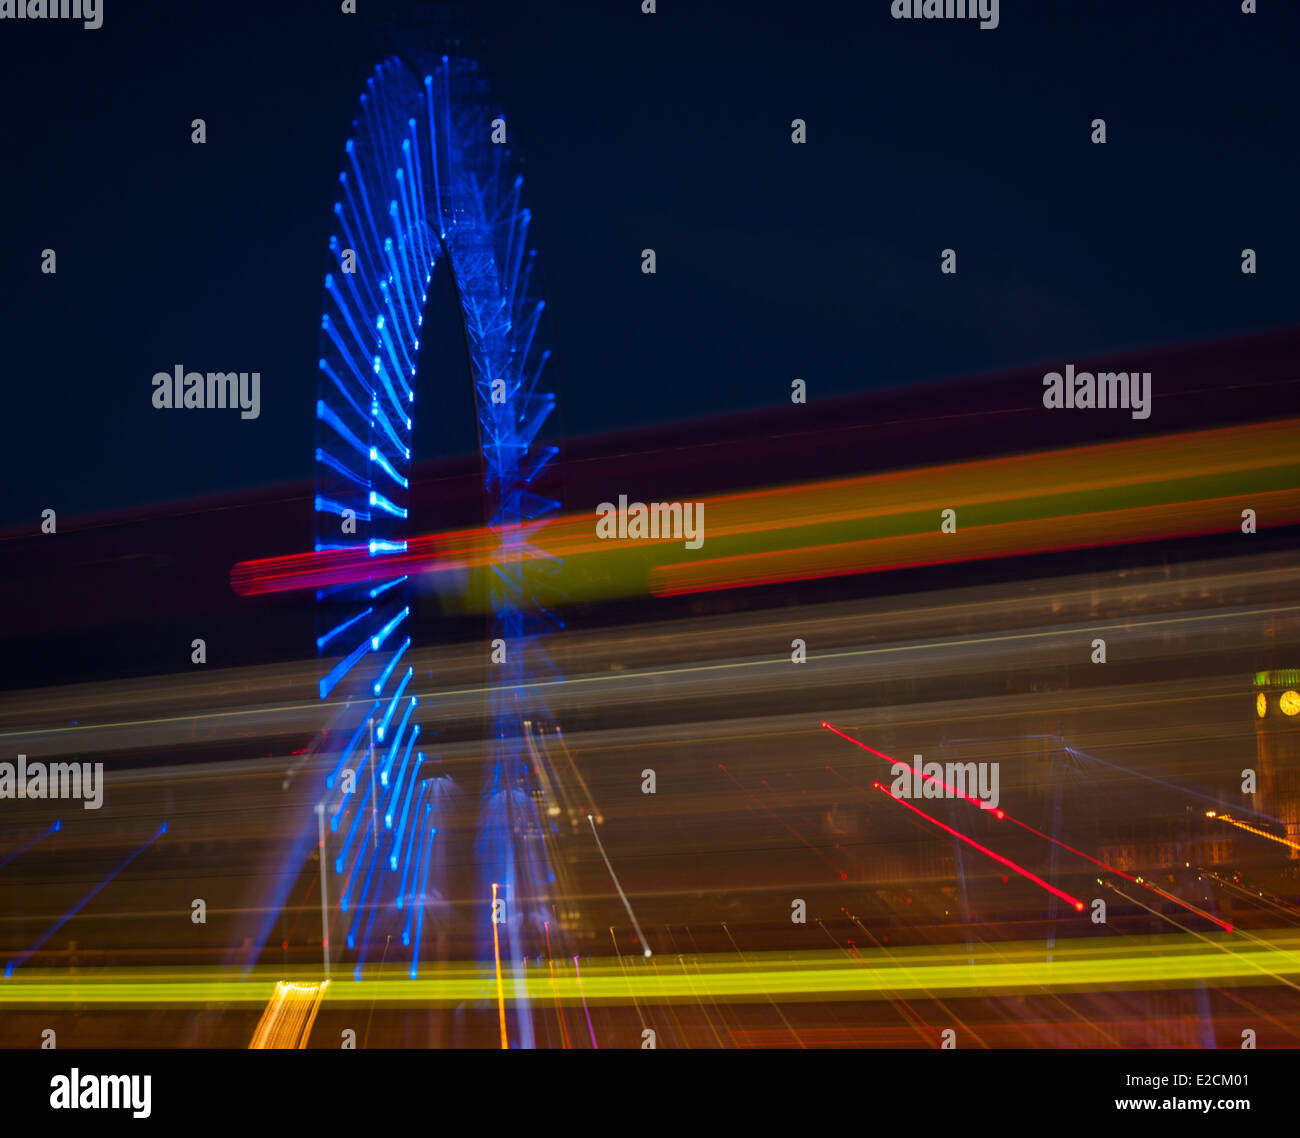 Central London Westminster London Eye , Millennium Wheel , bus lights , at night with zoom blur abstract art artistic - Stock Image